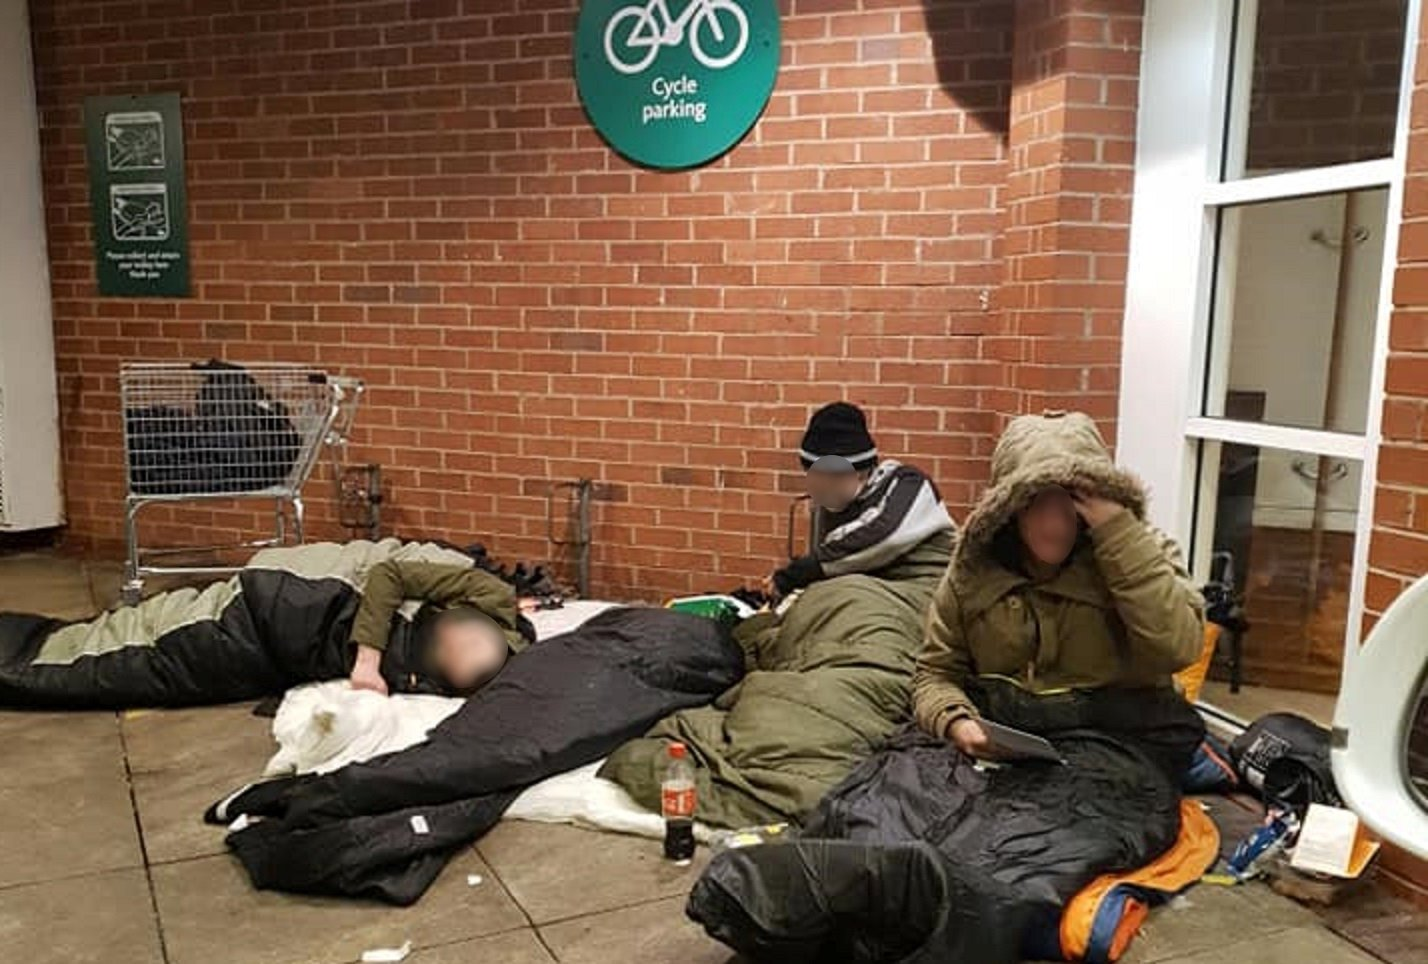 Homeless people outside Morrisons in Blackburn. See SWNS story SWLEhomeless; Managers at a Morrisons store in Blackburn, Lancs., and a Sainsbury's in Halifax, West Yorks., have both confessed to claims staff had been disposing of tents and property outside their stores. Uniformed staff were spotted loading items into a trolley from inside a ventilation unit where rough sleepers are known to store their belongings throughout the day.